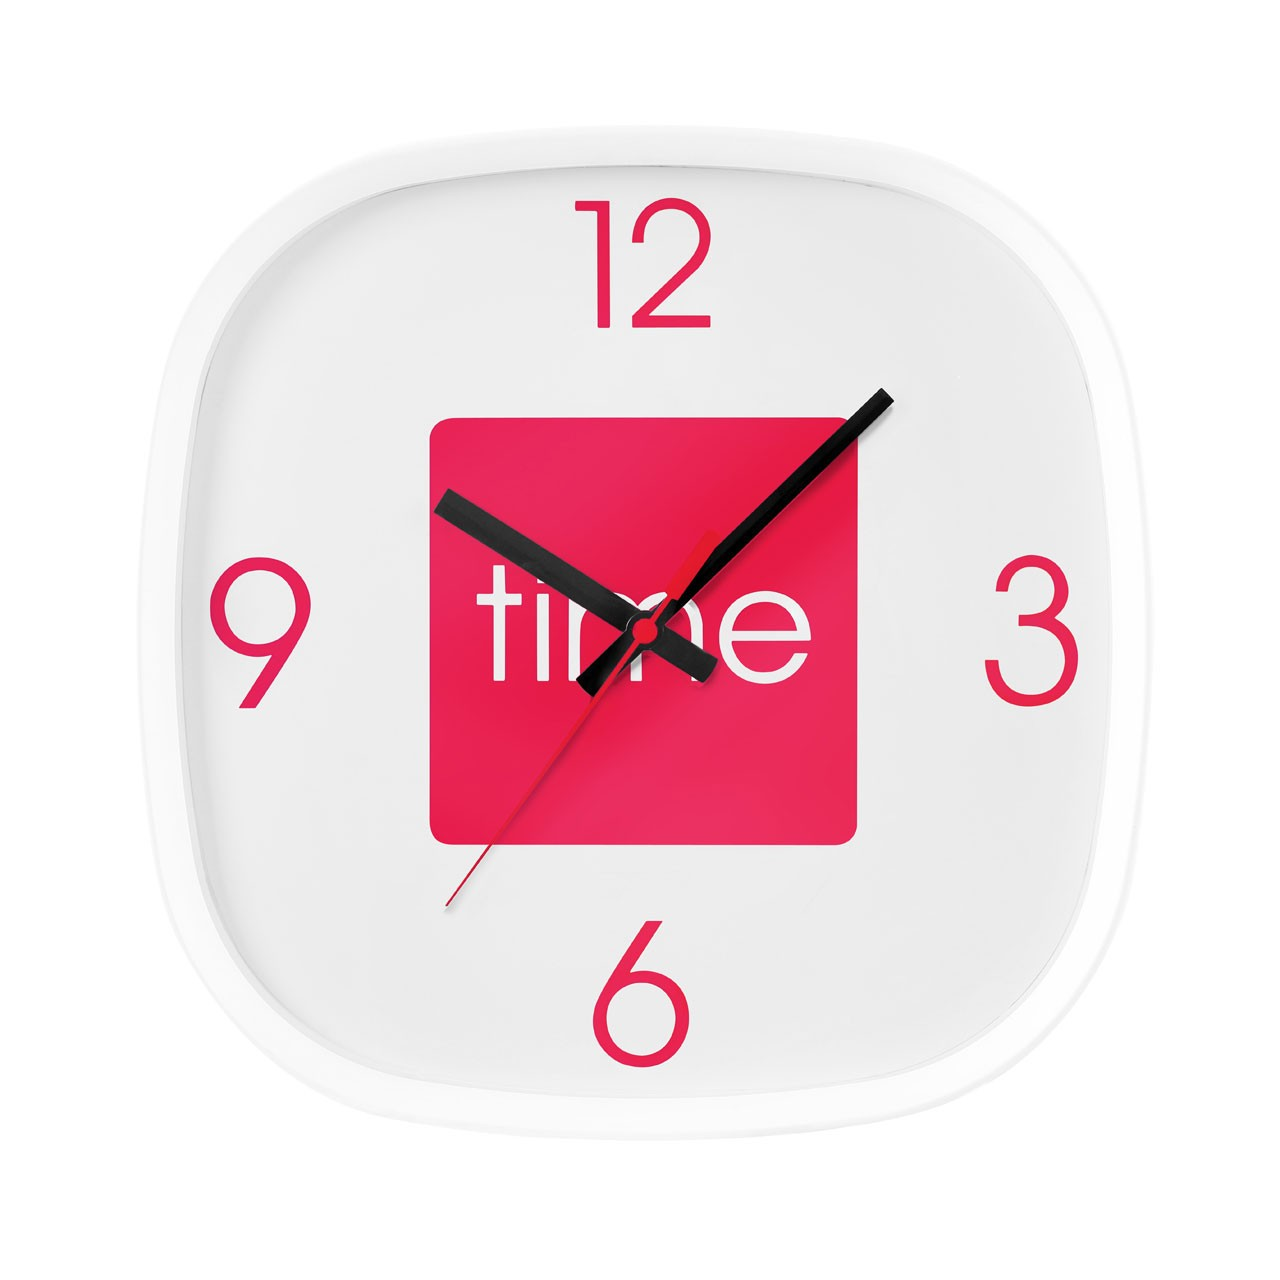 Arco Wall Clock Latest in Contemporary Style to Compliment Your